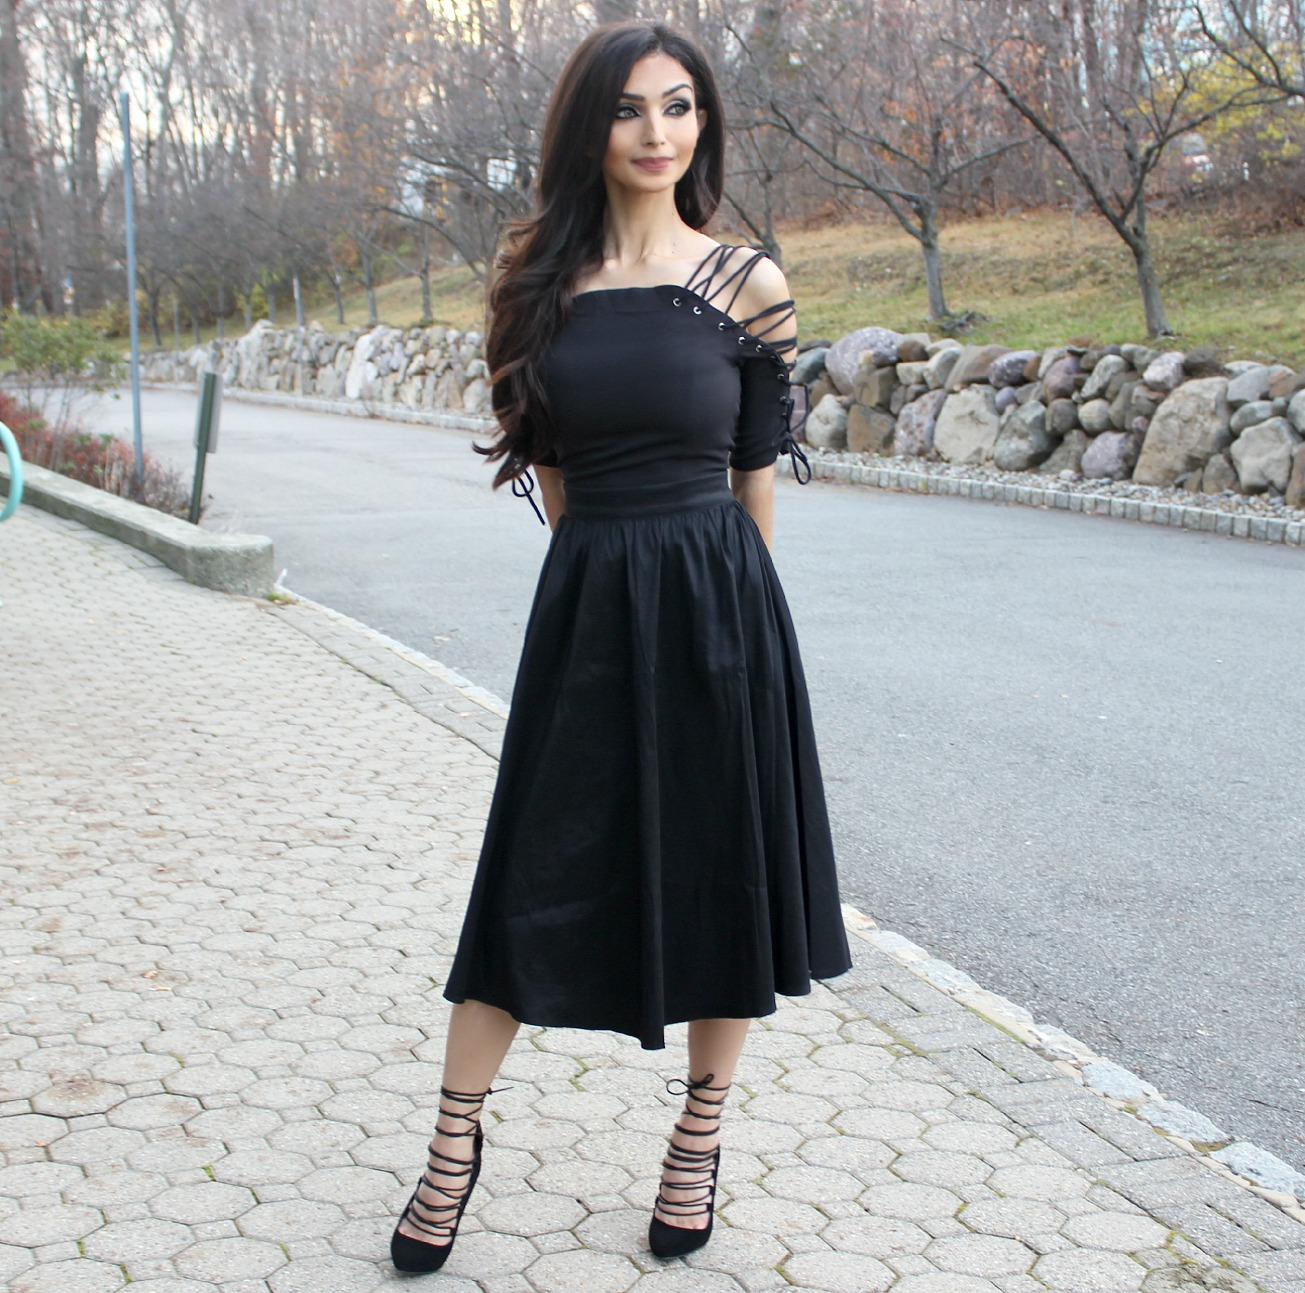 Bellqees Gothic Romance Fashion Lookbook Style 1